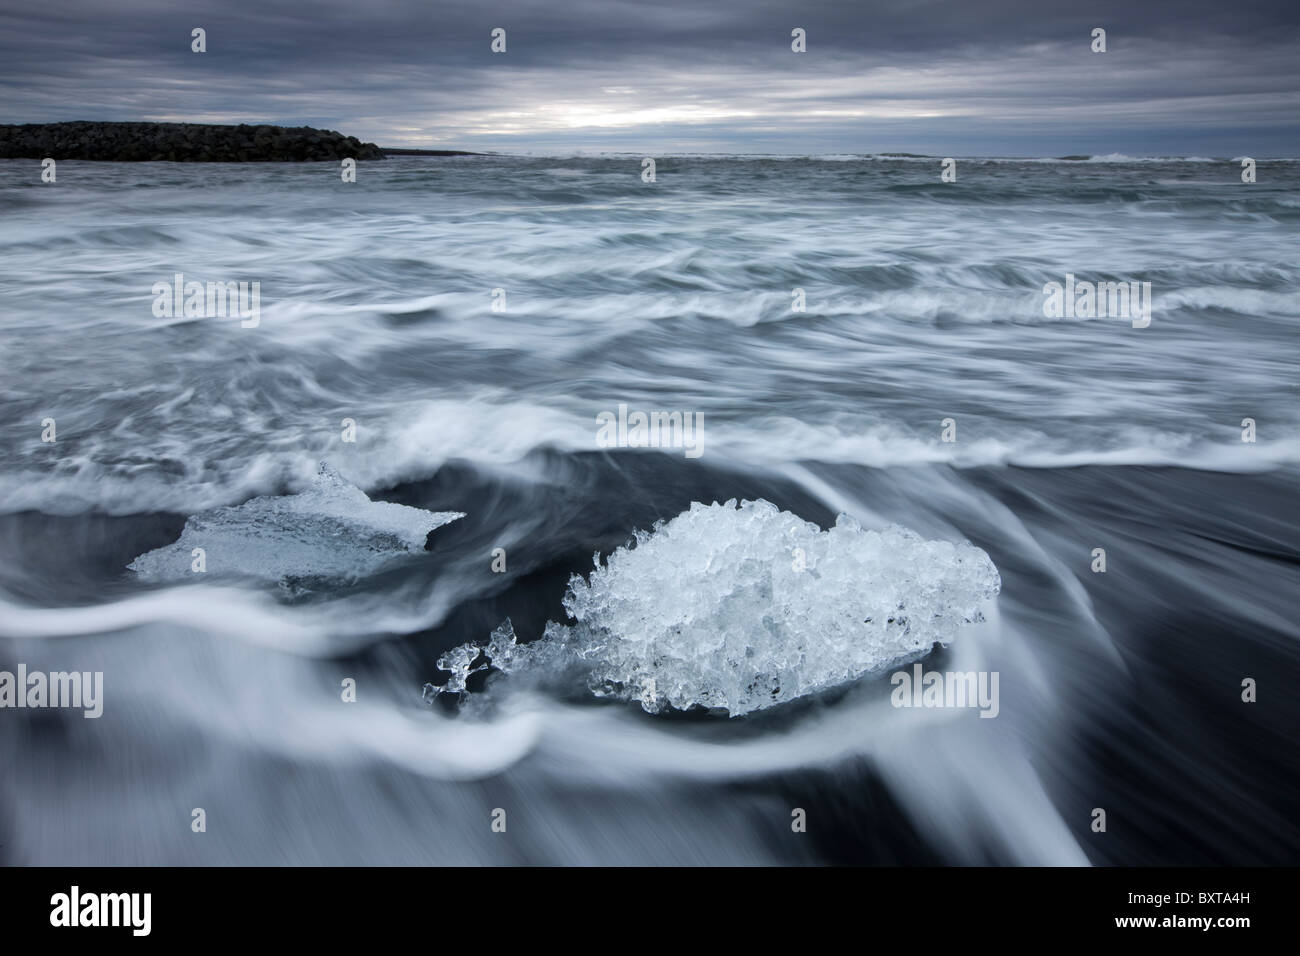 Iceland Skaftafell National Park Motion blur image of icebergs from Vatnajokull Glacier in waves from North Atlantic - Stock Image